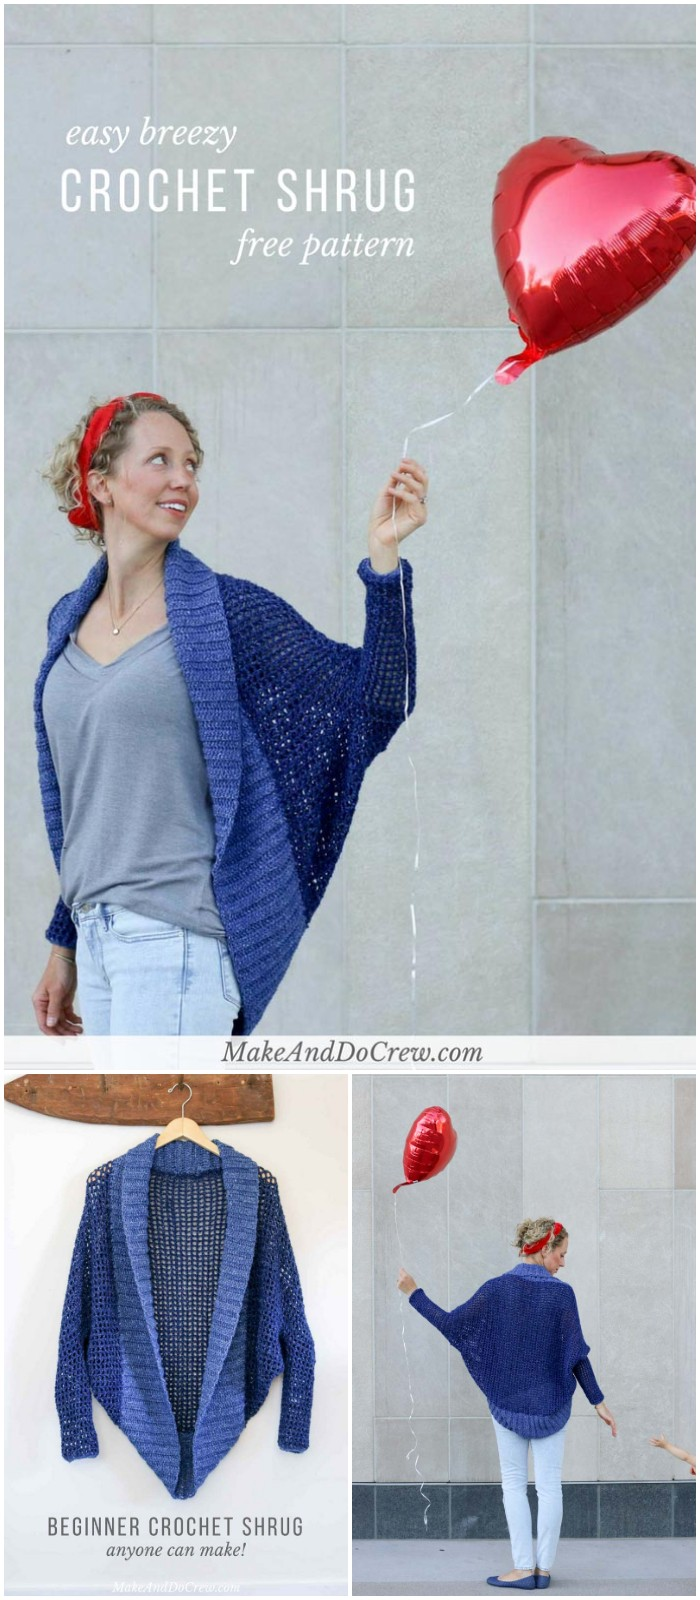 Easy Crochet Shrug  Free Pattern: